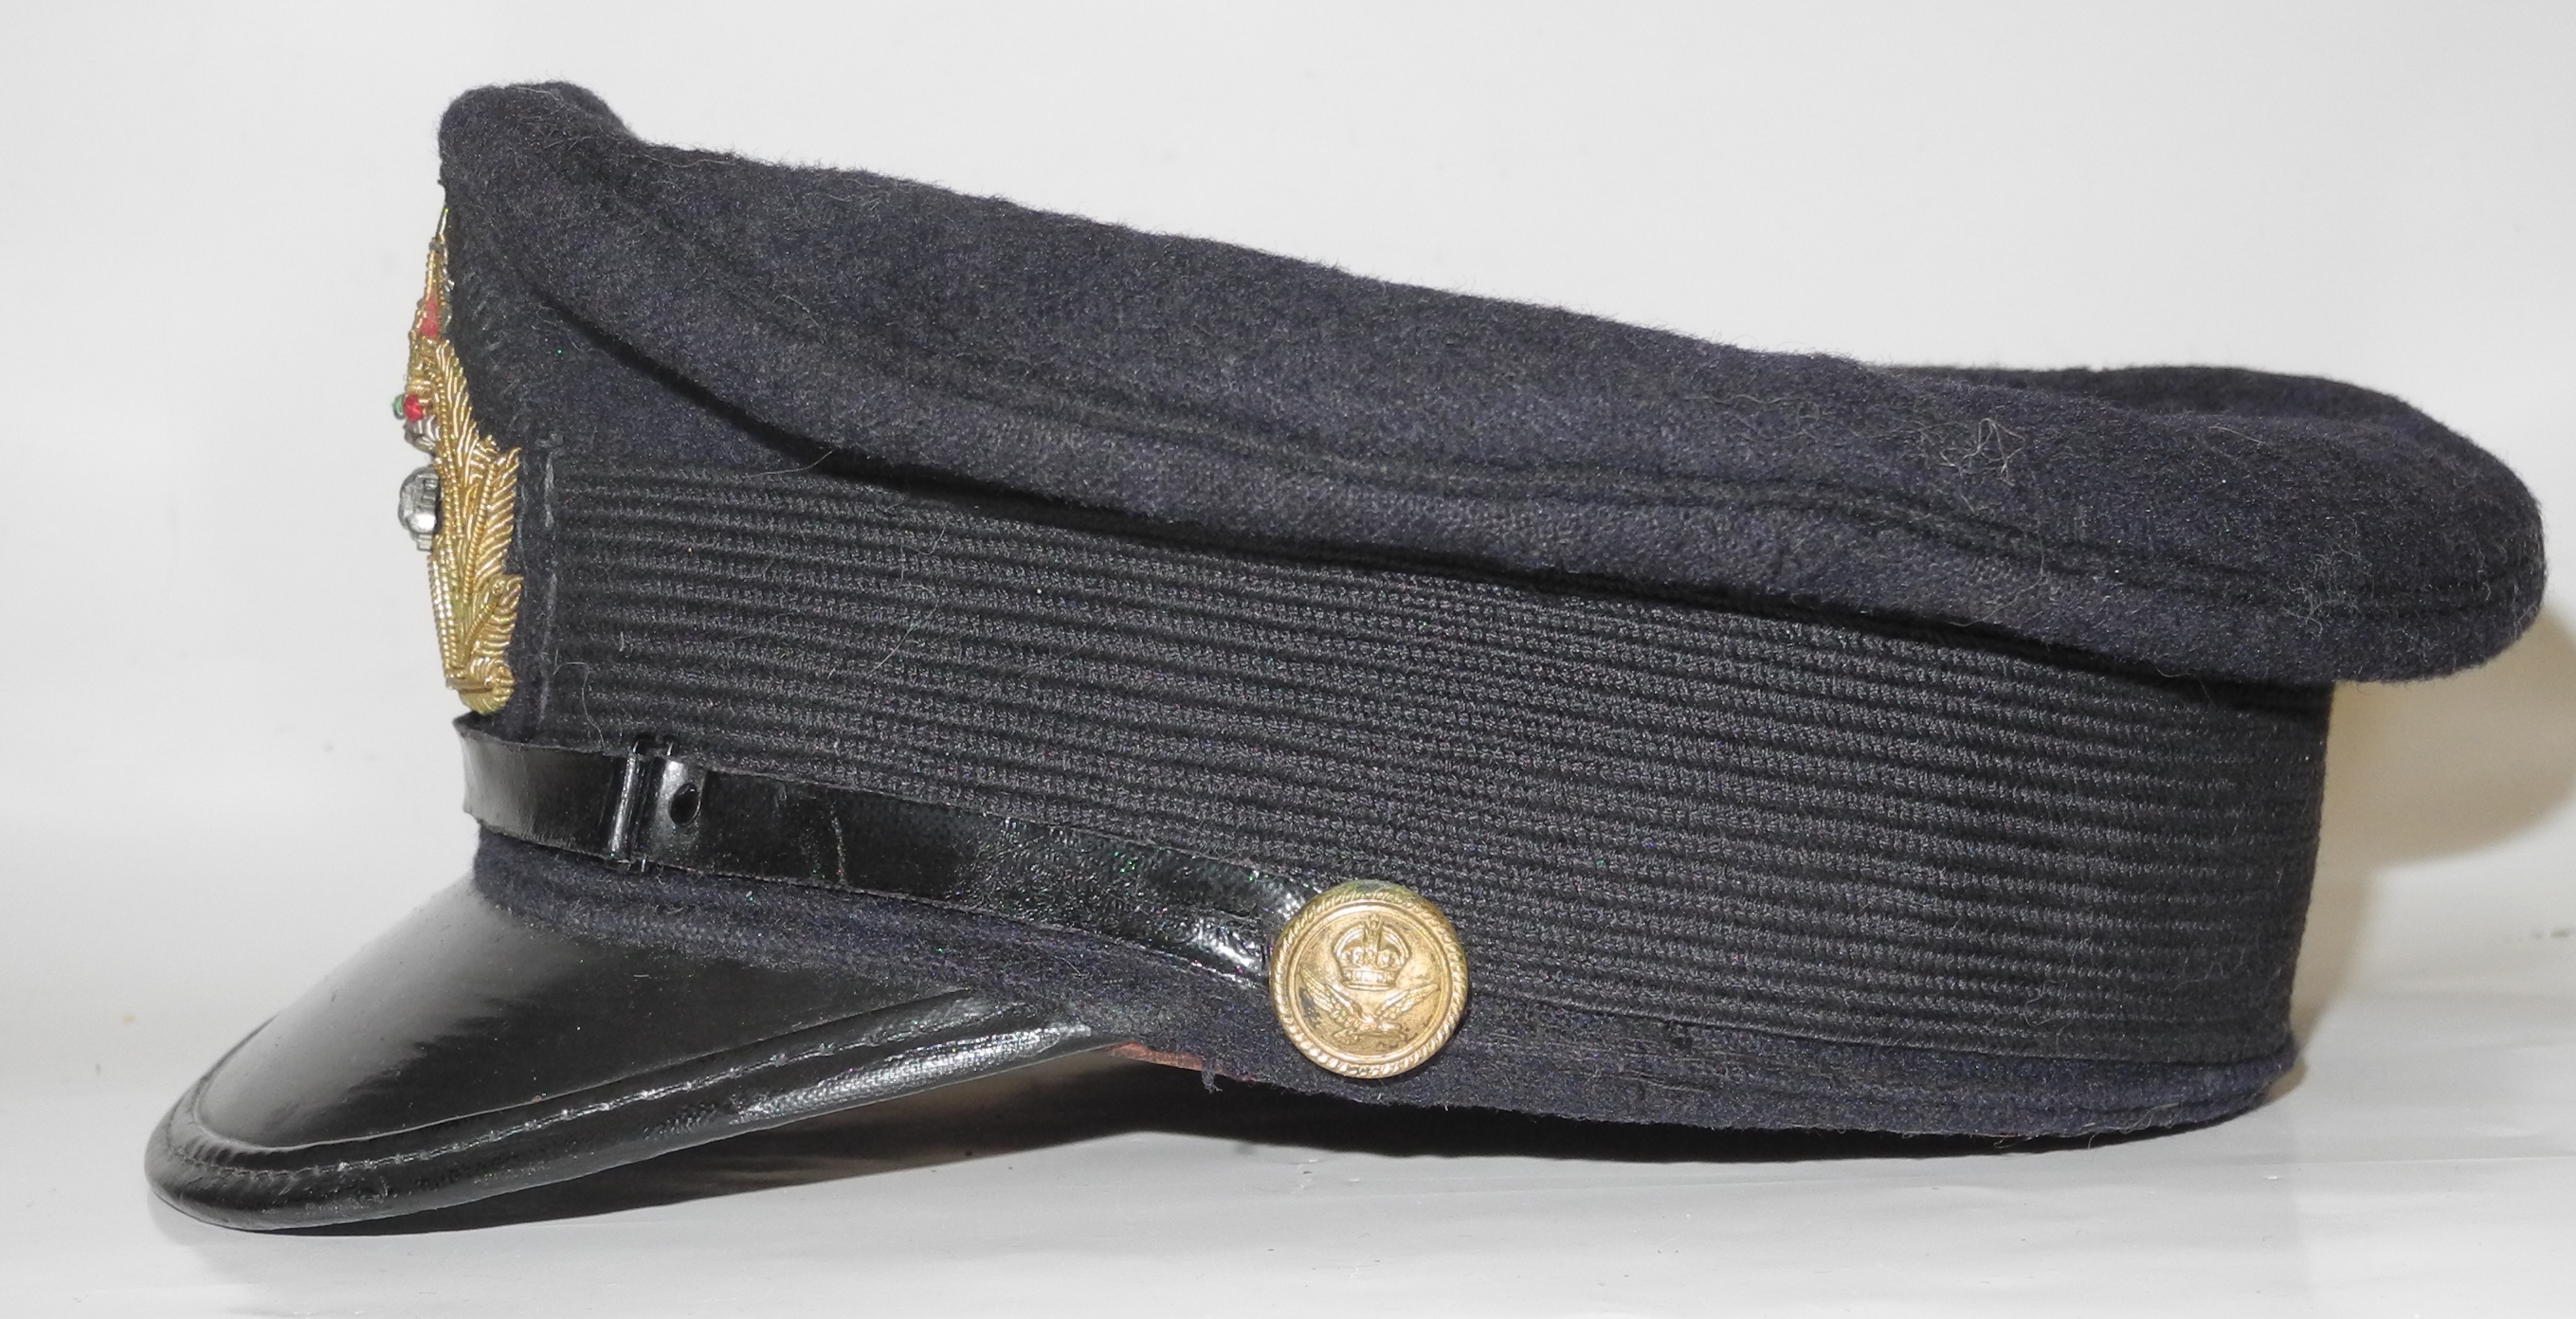 RNAS officer's cap with reproduction badge34